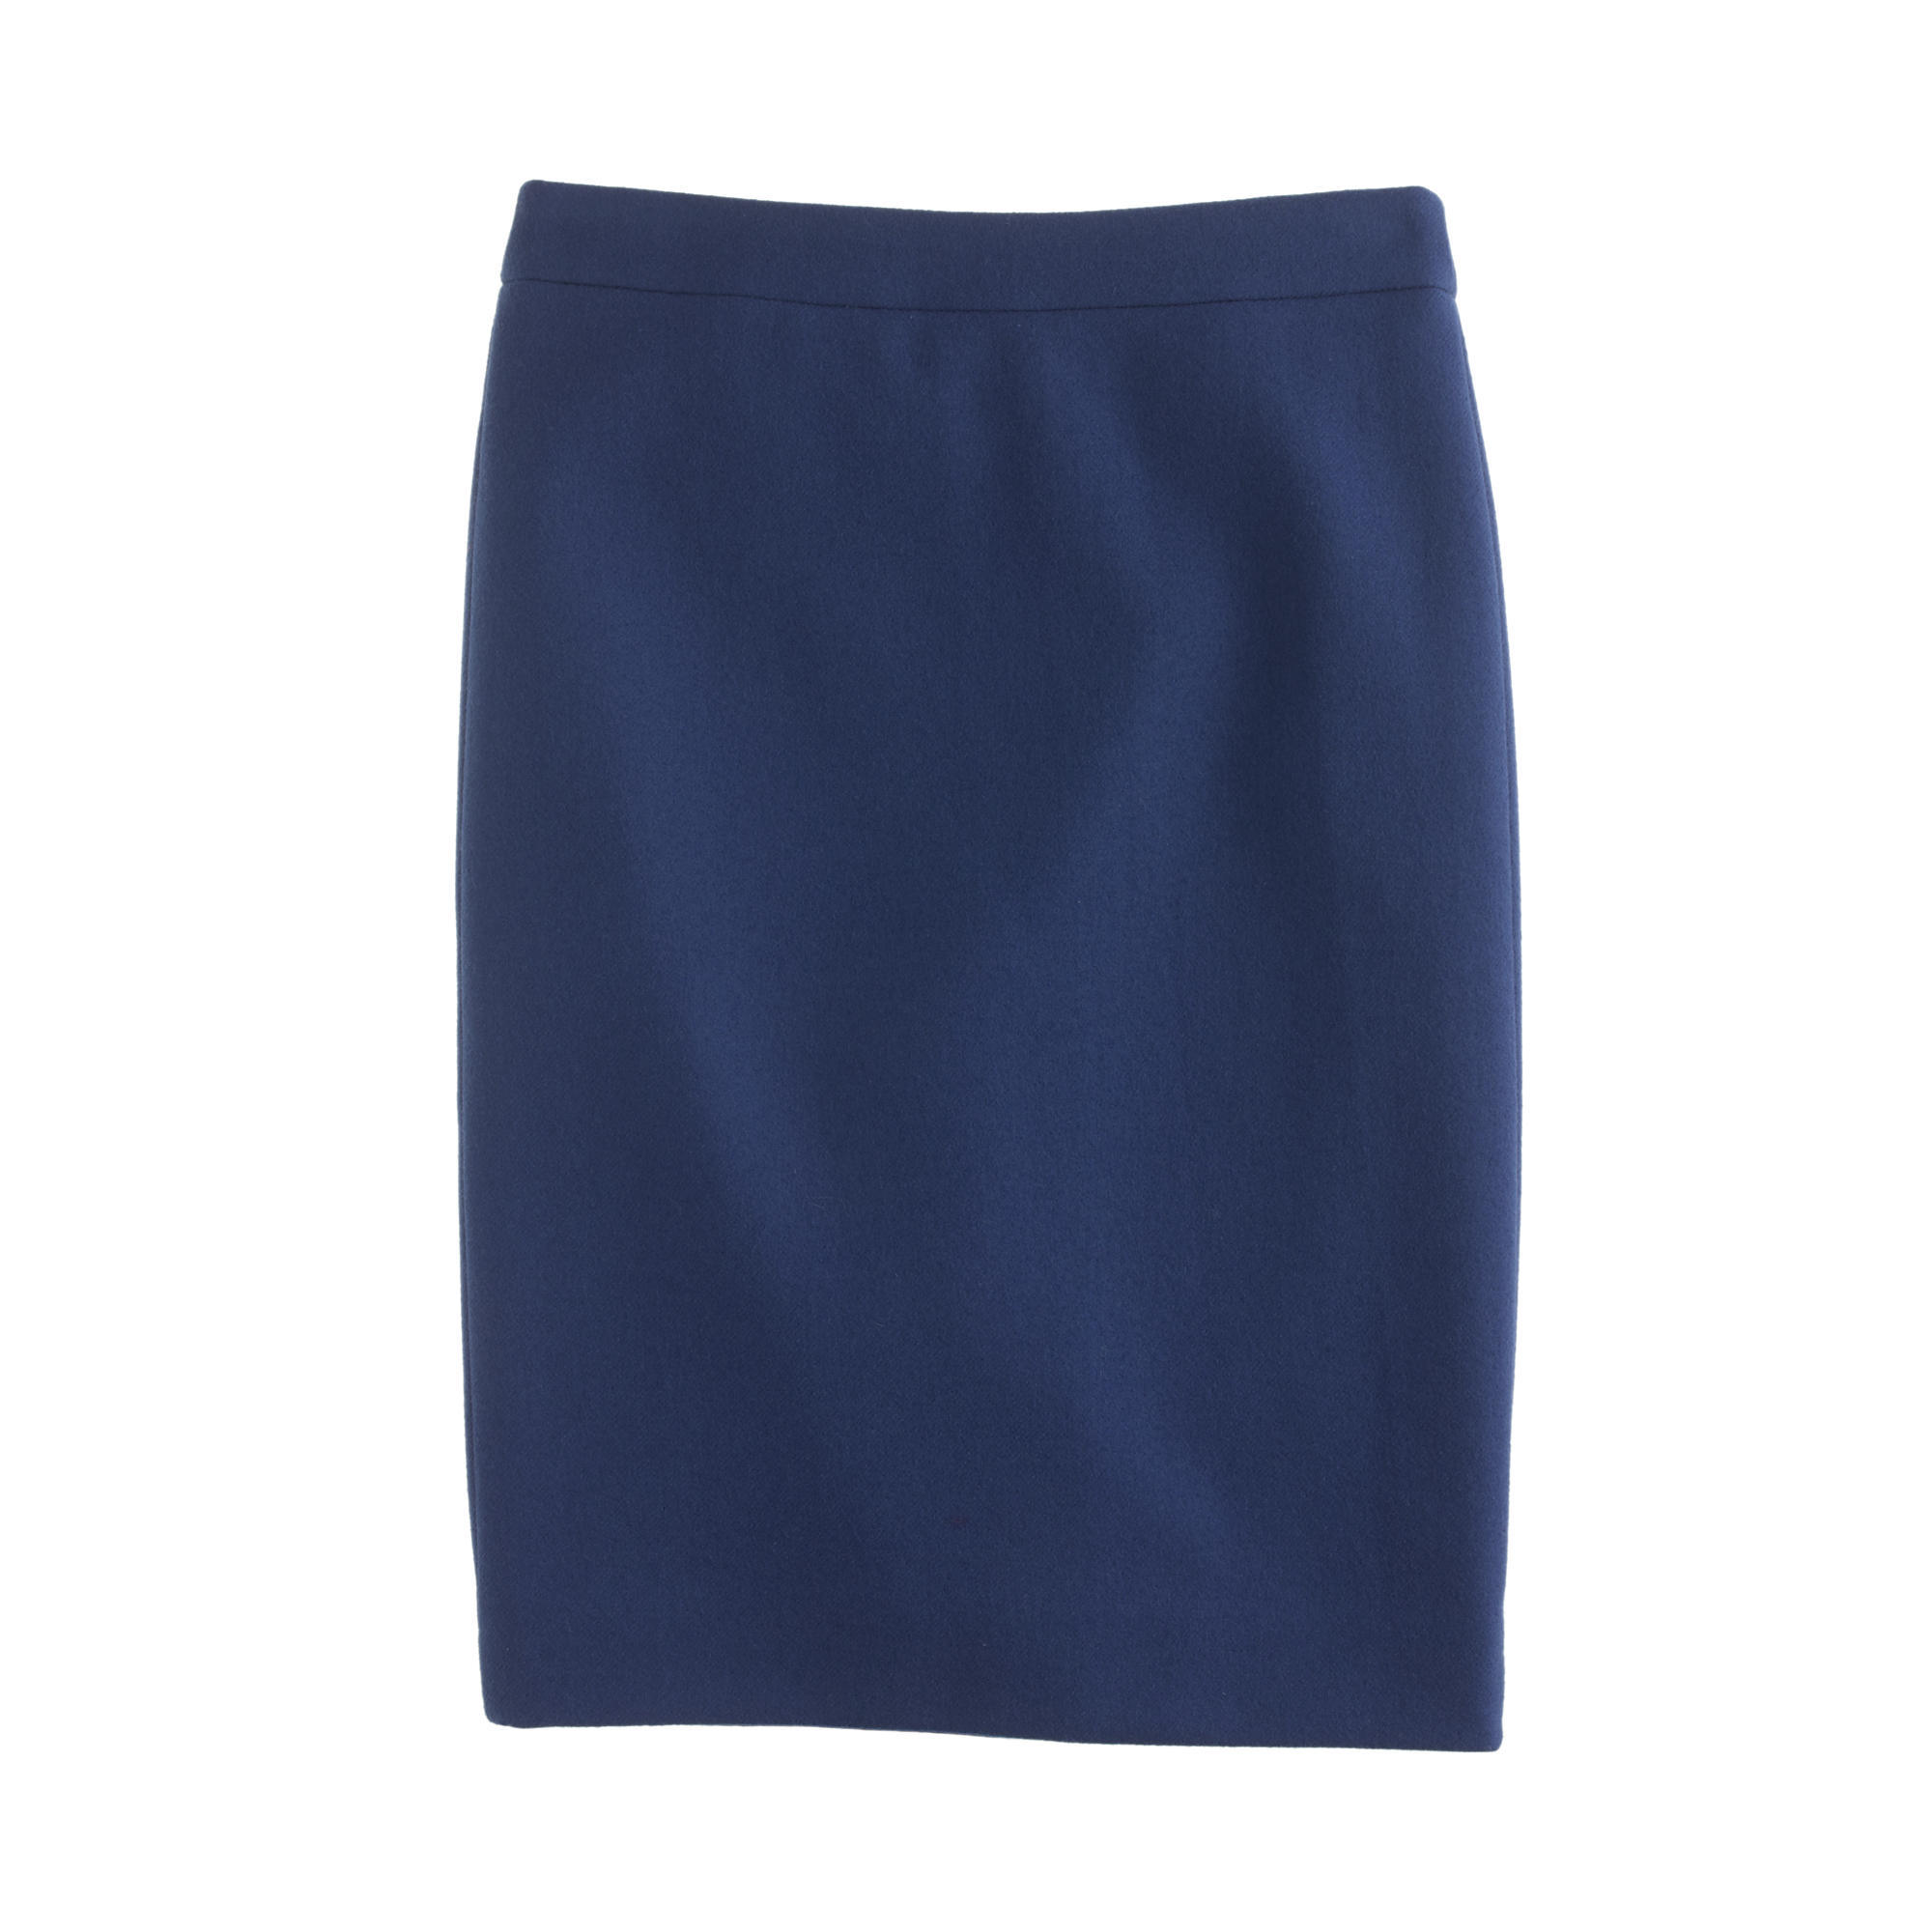 8a6aa65799 J.Crew Petite No. 2 Pencil Skirt In Double-Serge Wool in Blue - Lyst